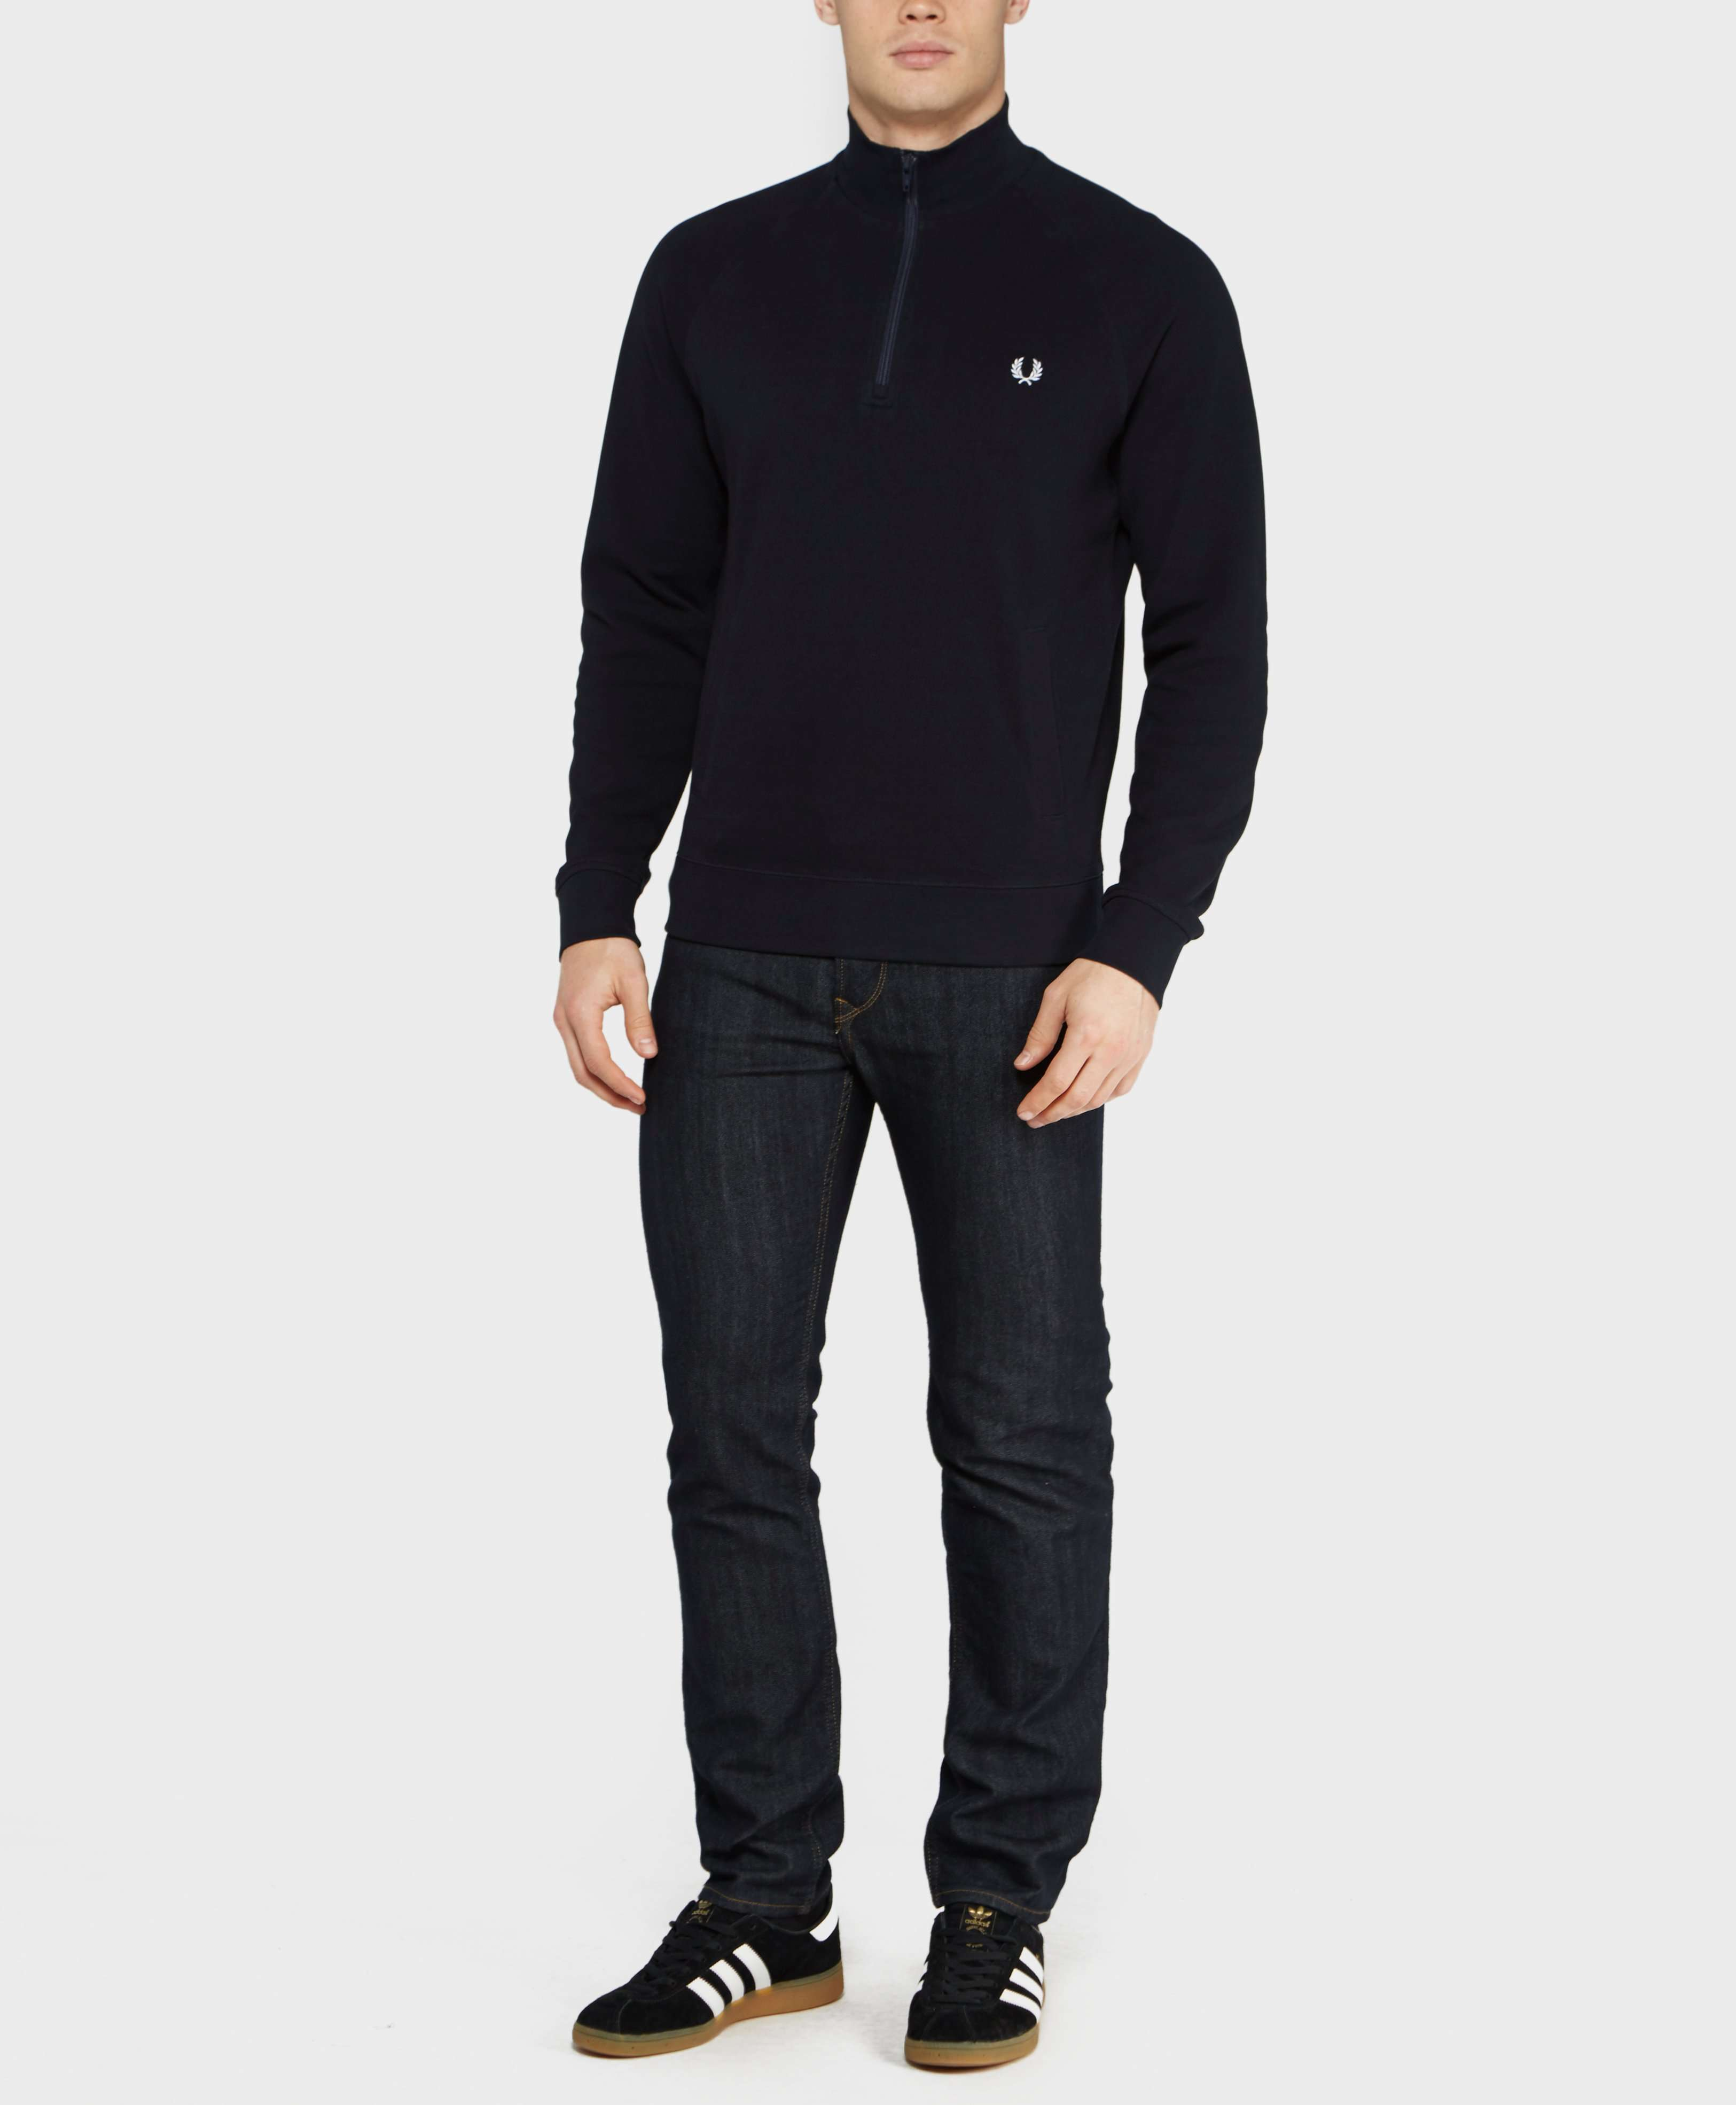 Fred Perry 1/2 Zip Pique Knit - Exclusive